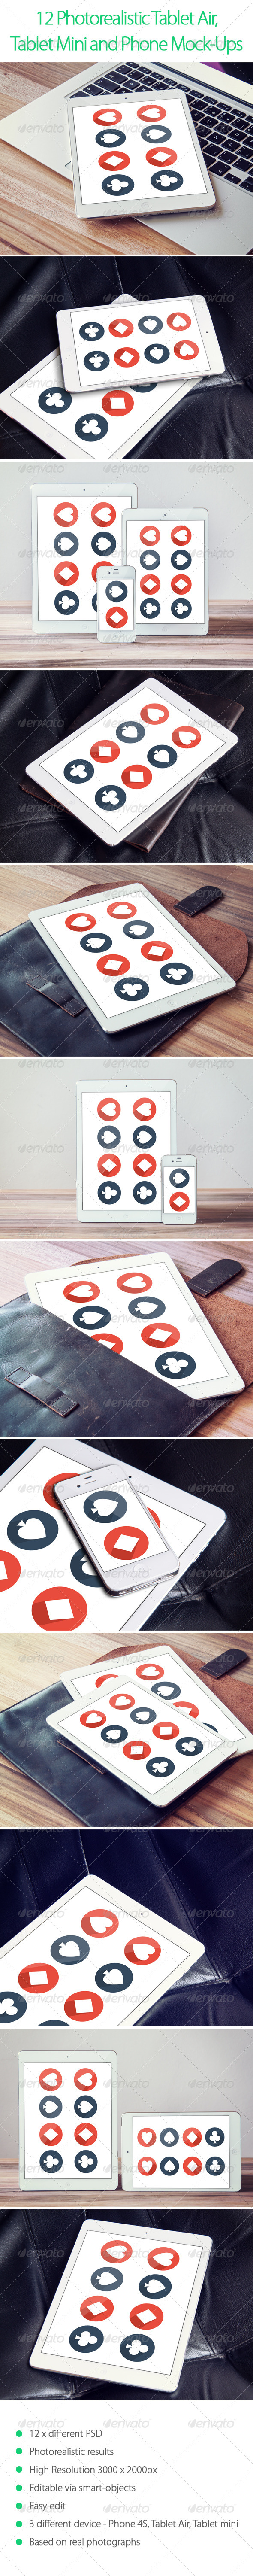 12 Photorealistic Tablet and Phone Mock-Ups - Displays Product Mock-Ups